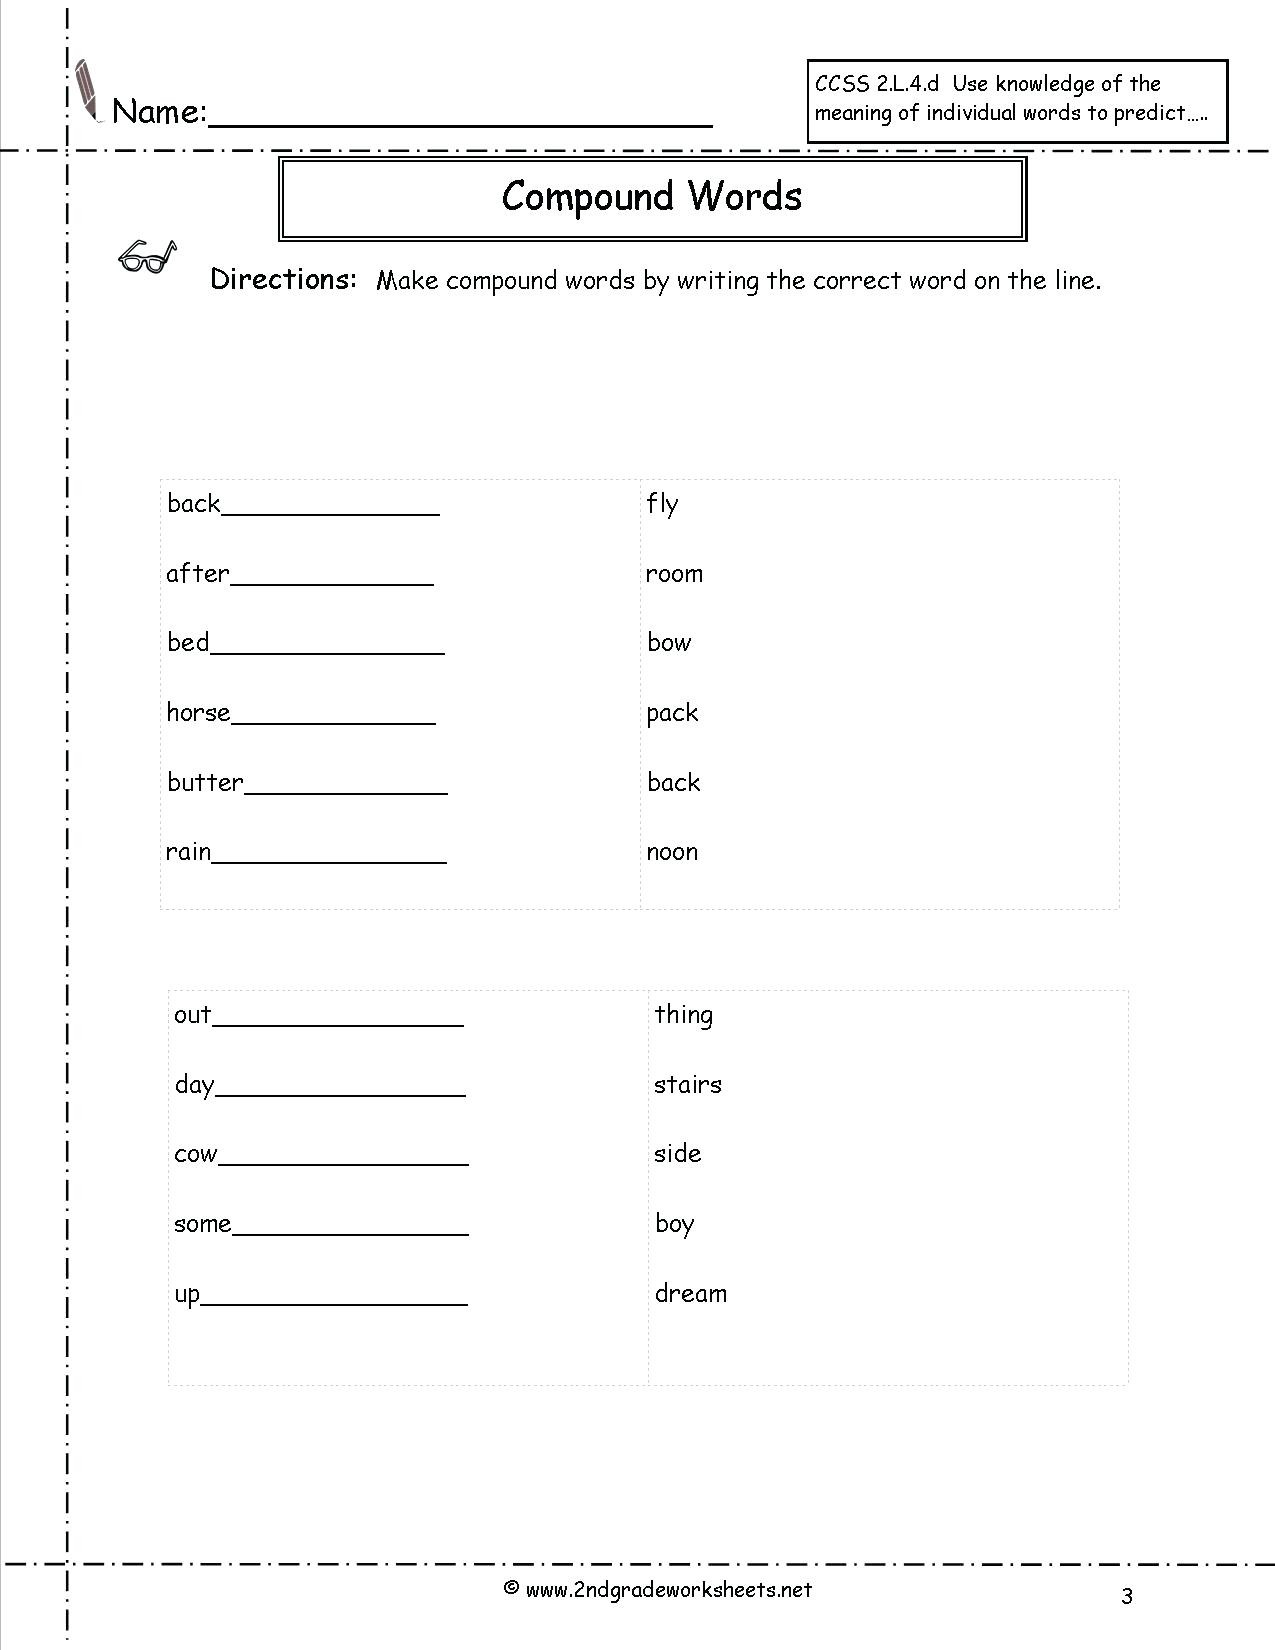 Compound Words Worksheets 1st Grade Pound Words Worksheets First Grade